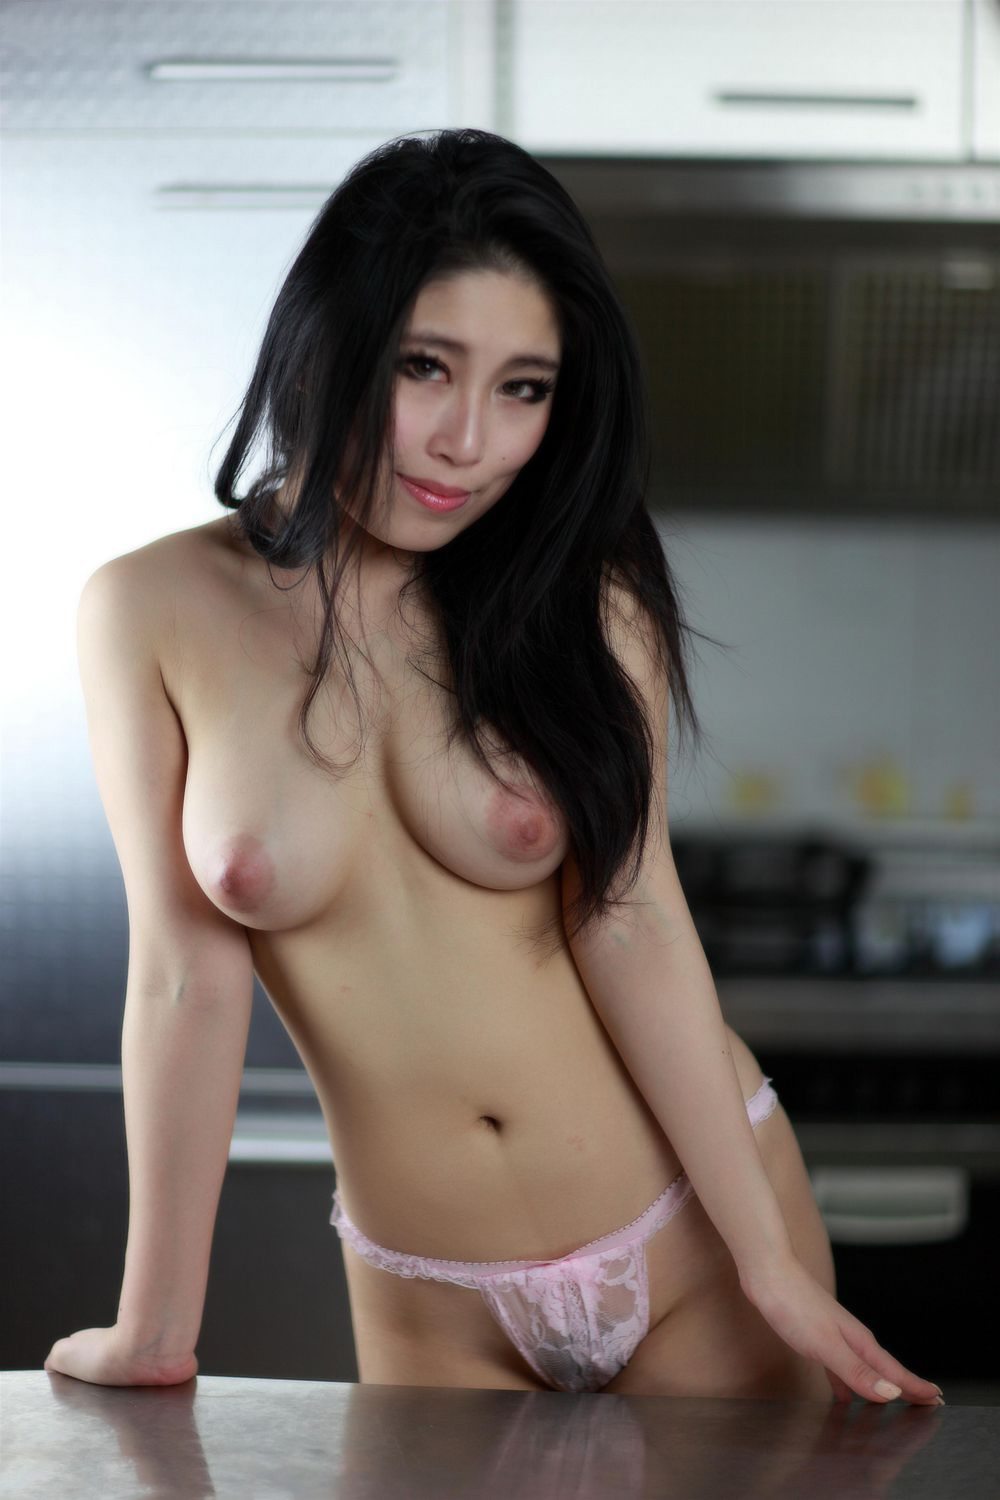 Myanmar modelsex photo, real young lesabian movie